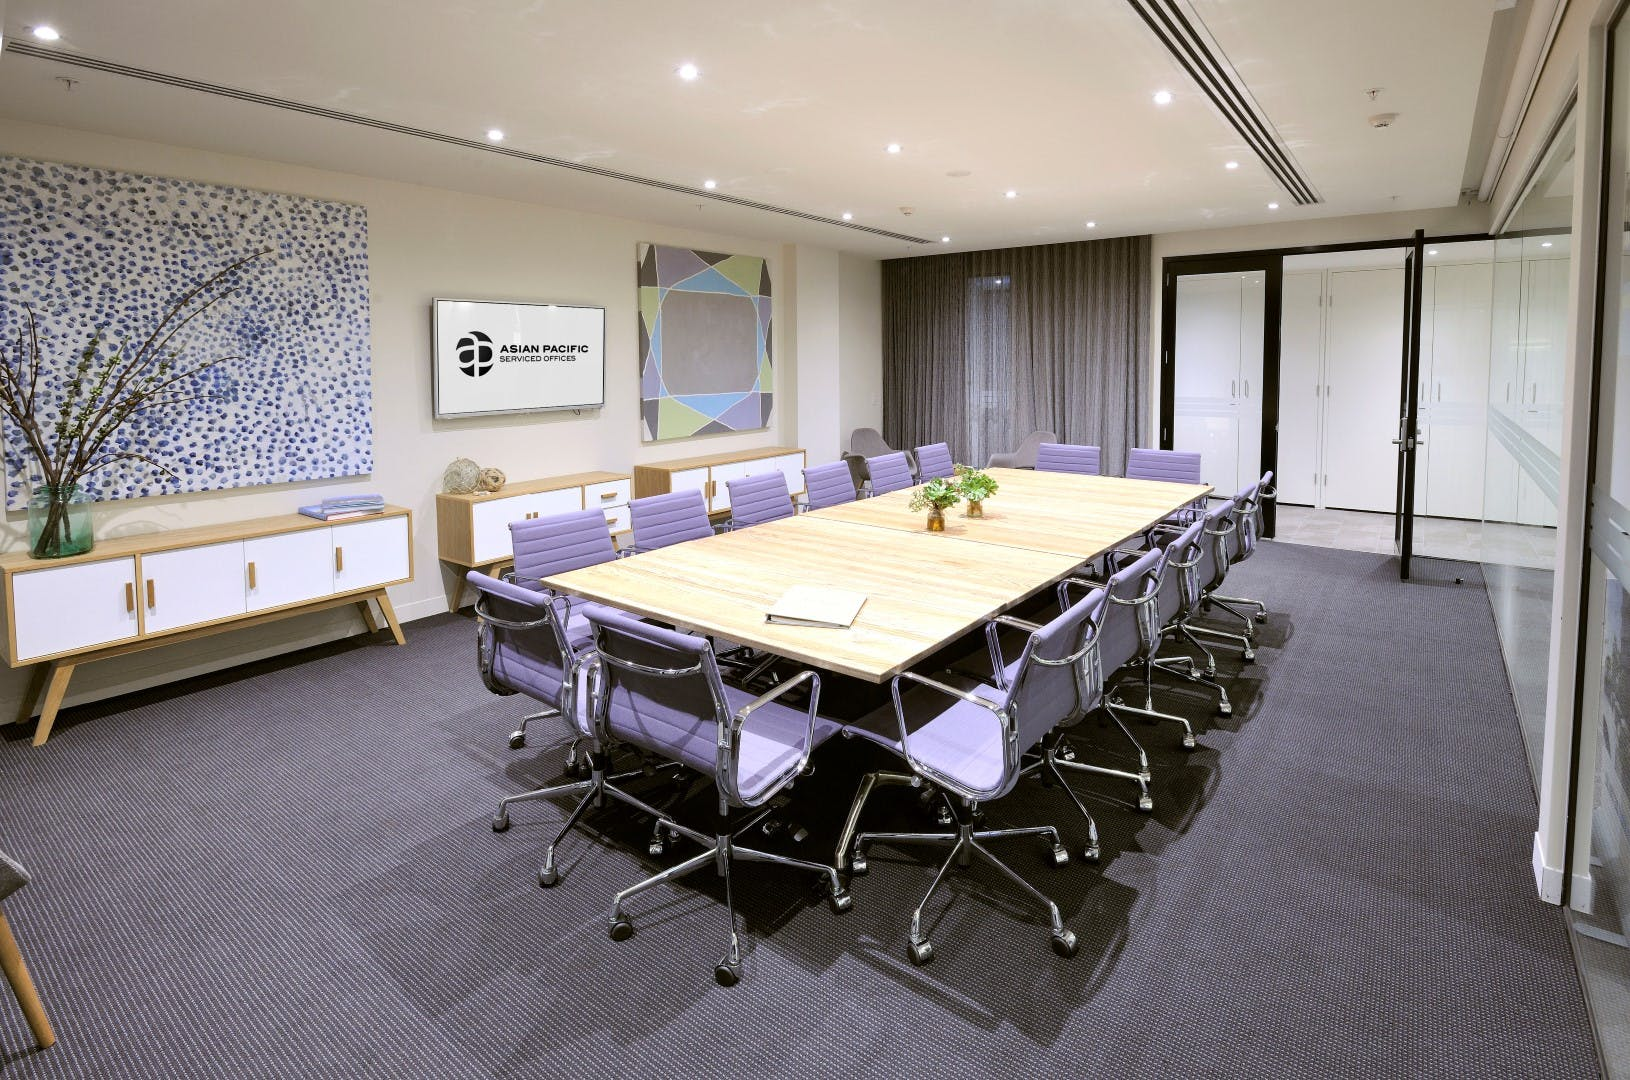 Boardroom, meeting room at The Peninsula On The Bay, image 1